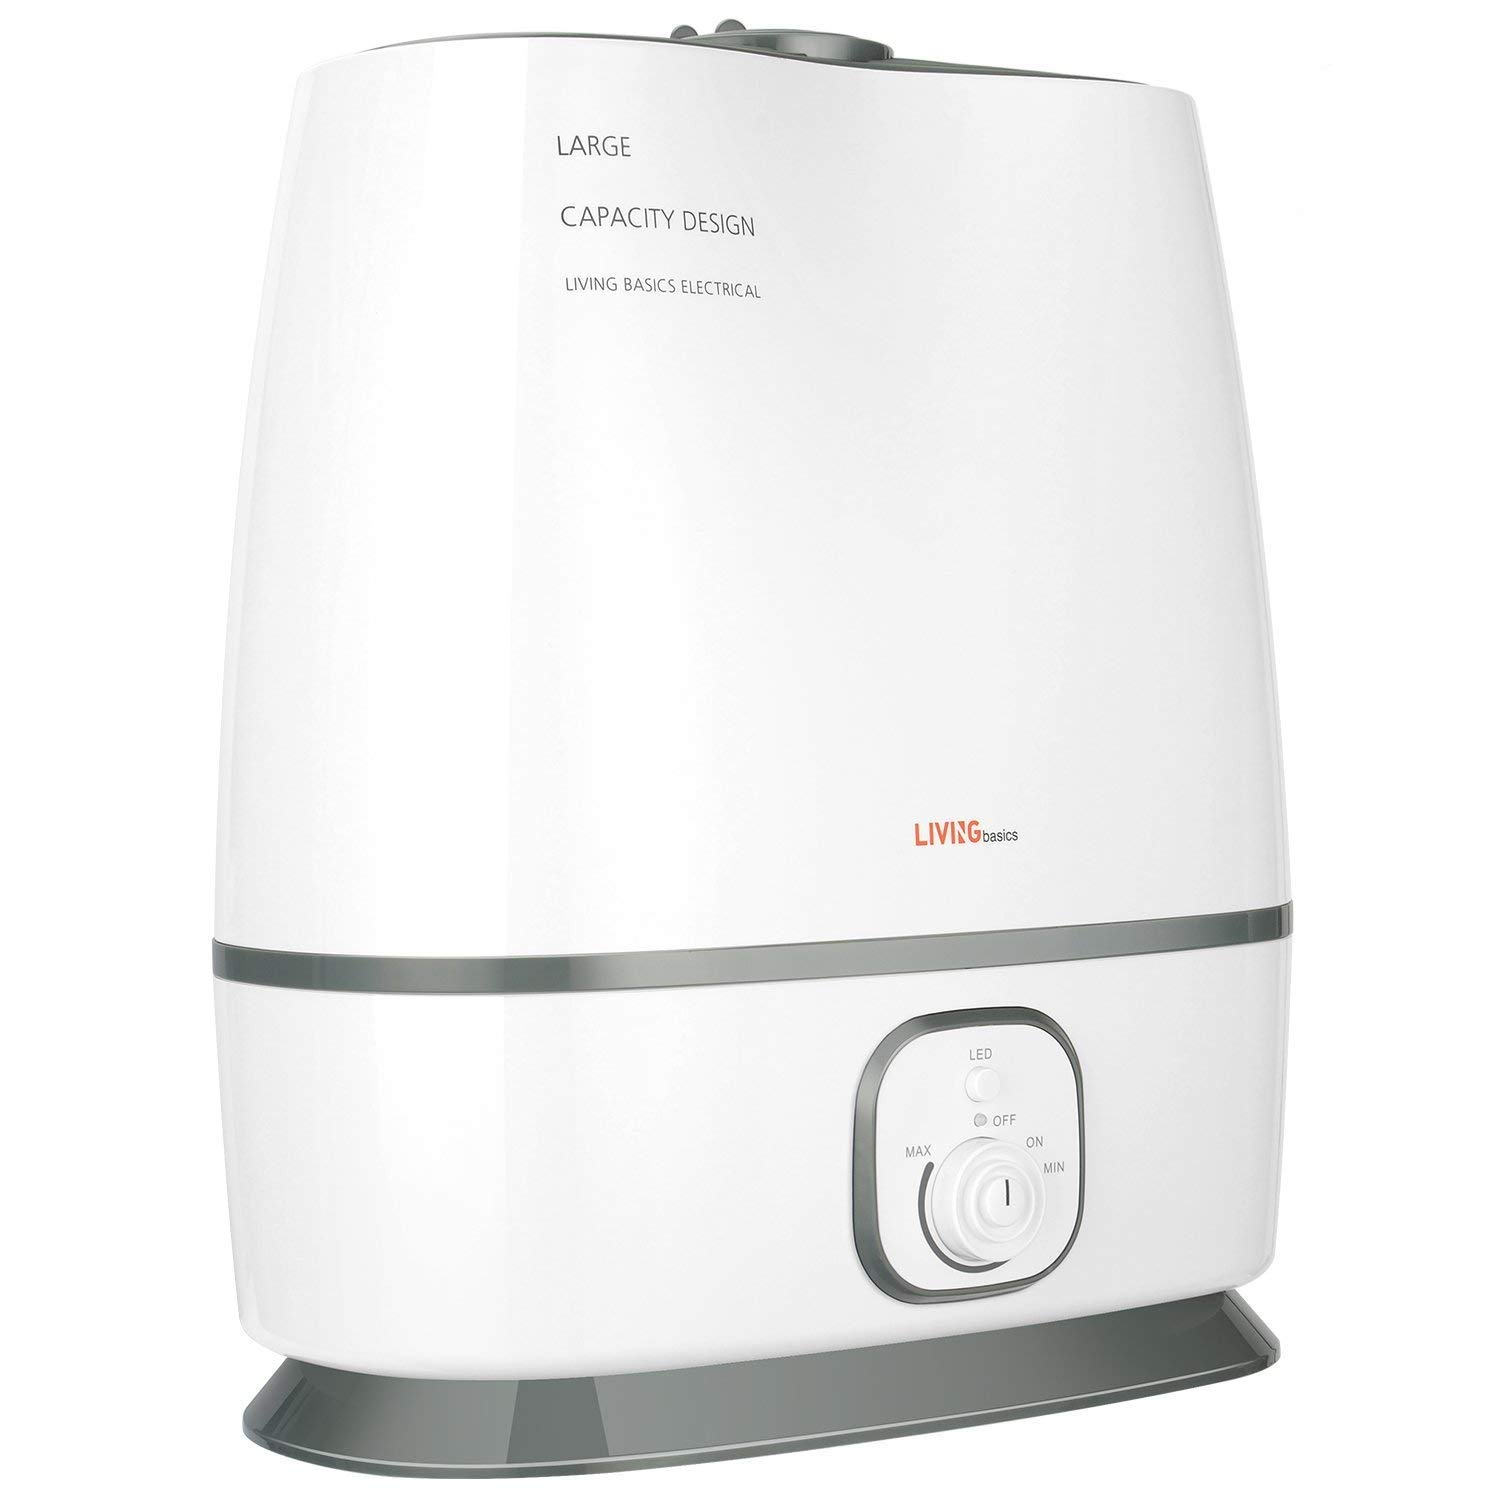 LIVINGbasics Ultrasonic Humidifiers, Cool Mist Humidifier with Filter Stepless Control, Large Capacity, Adjustable Mist, for Home Bedroom Larger Office - Large Capacity, 6L/1.6 Gallon